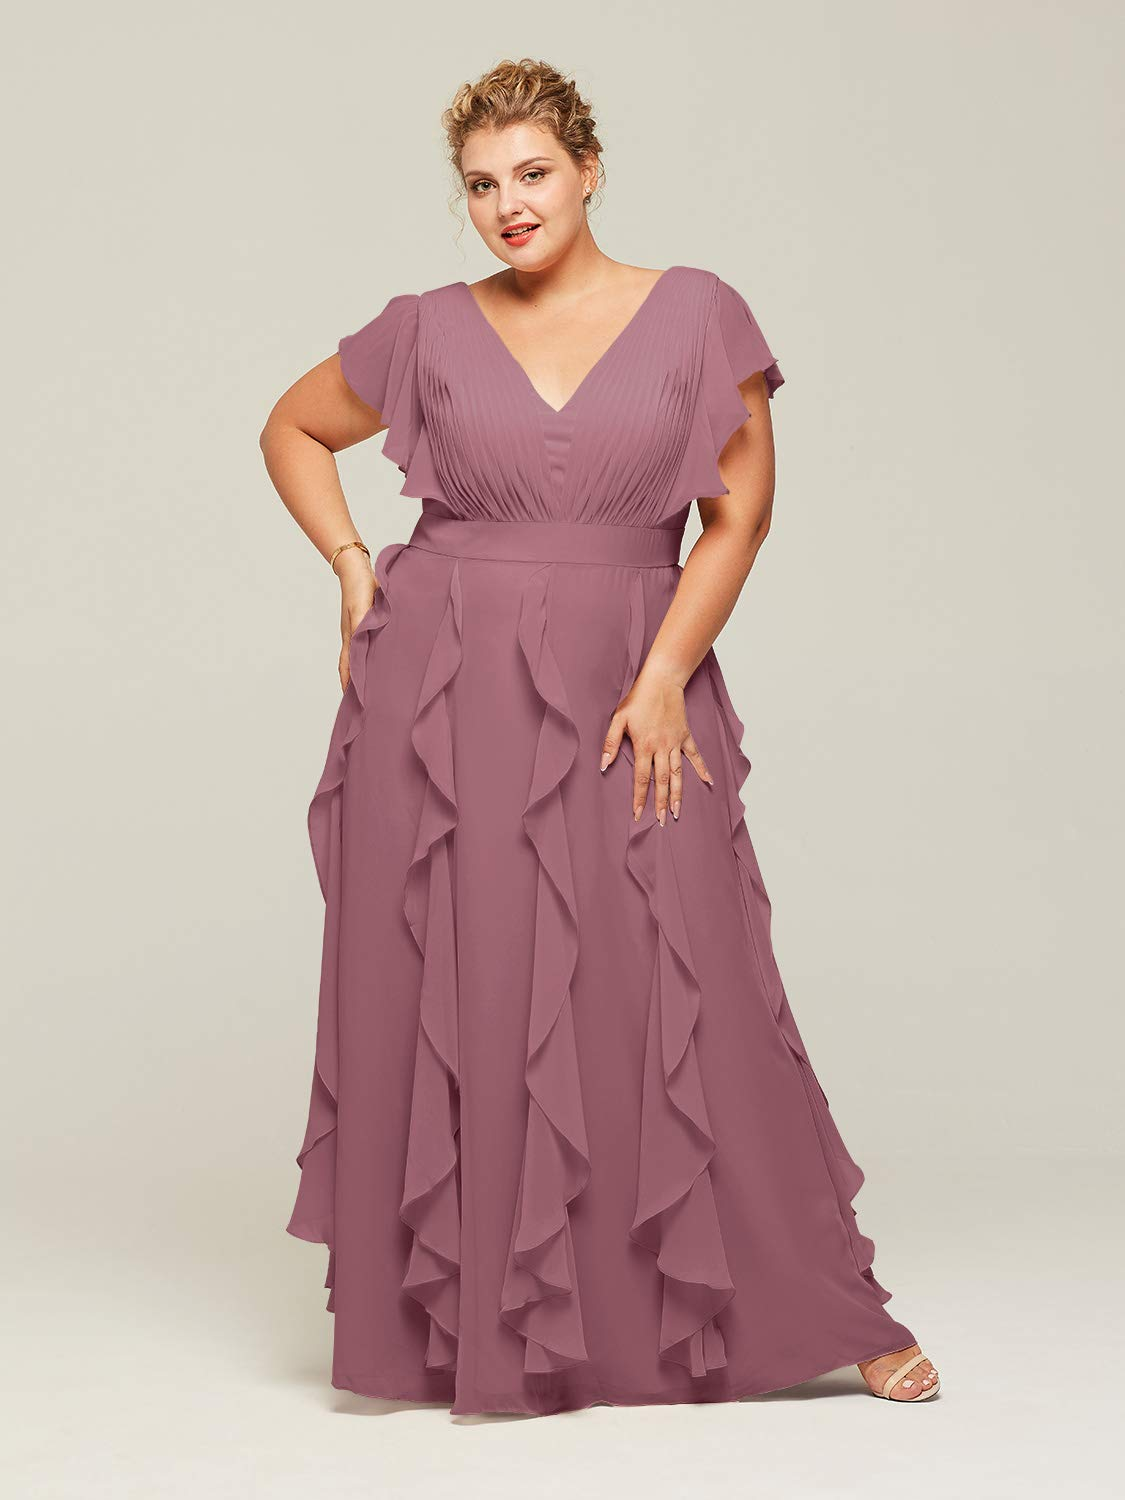 AW Bridal Plus Size Bridesmaid Dresses for Women Formal Dresses with  Sleeves Chiffon Long Gowns and Evening Dresses, Dusty Rose, US20